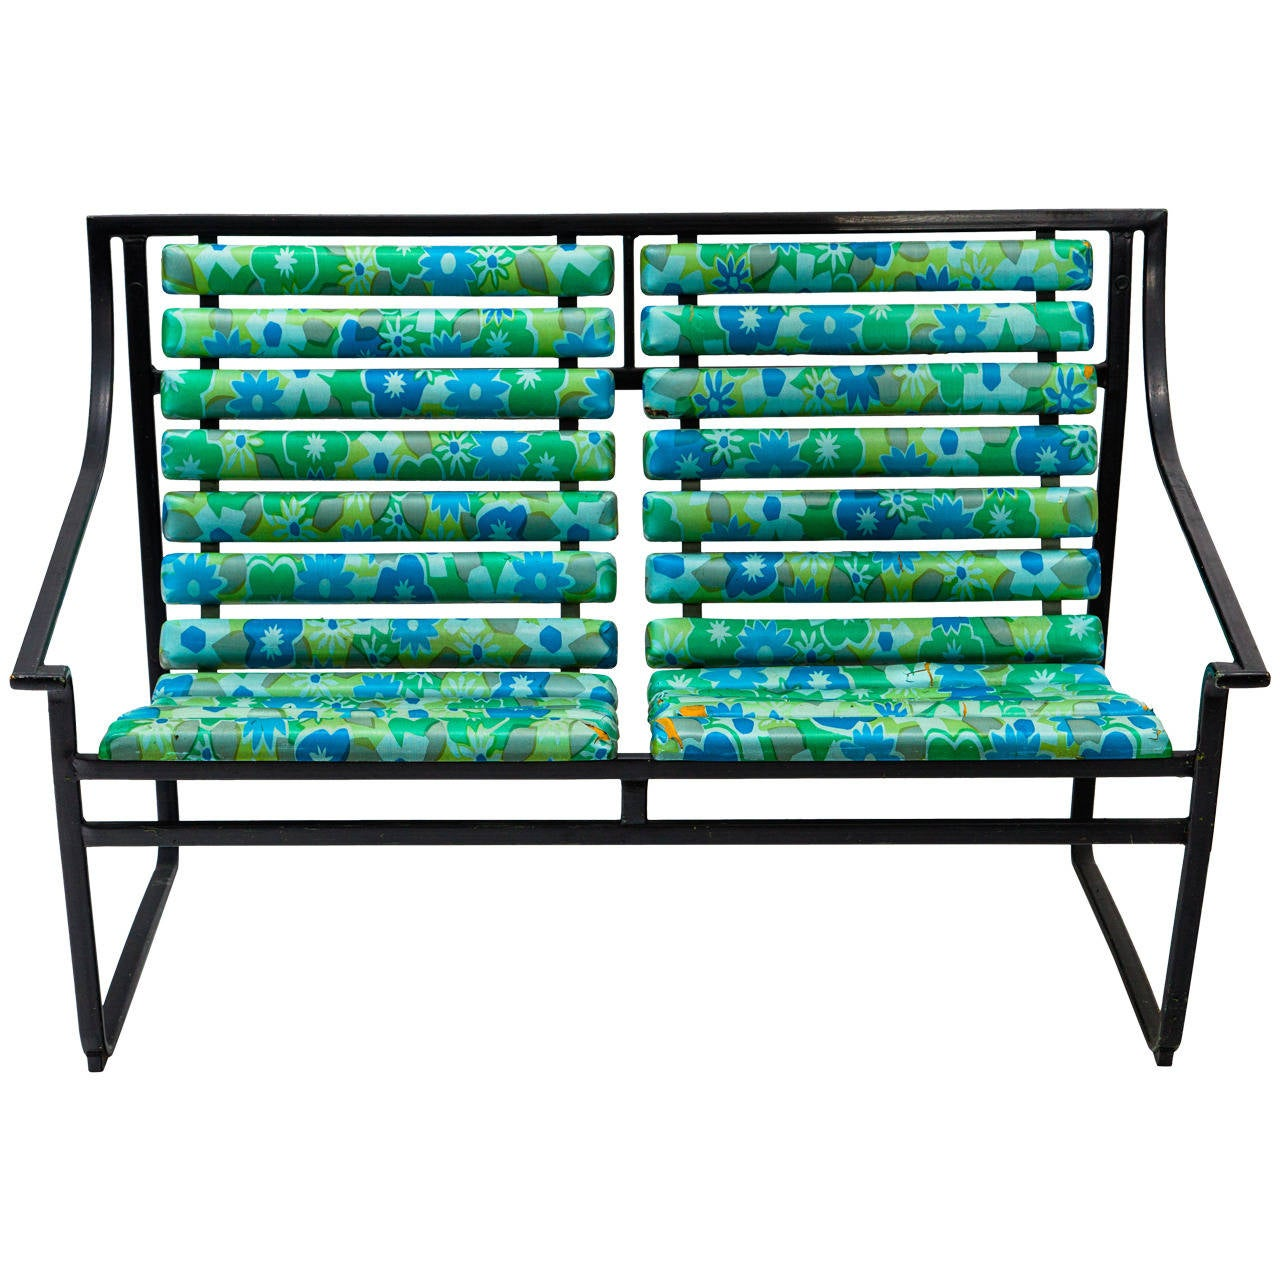 Tubular Steel Patio Settee or Bench by Samsonite at 1stdibs